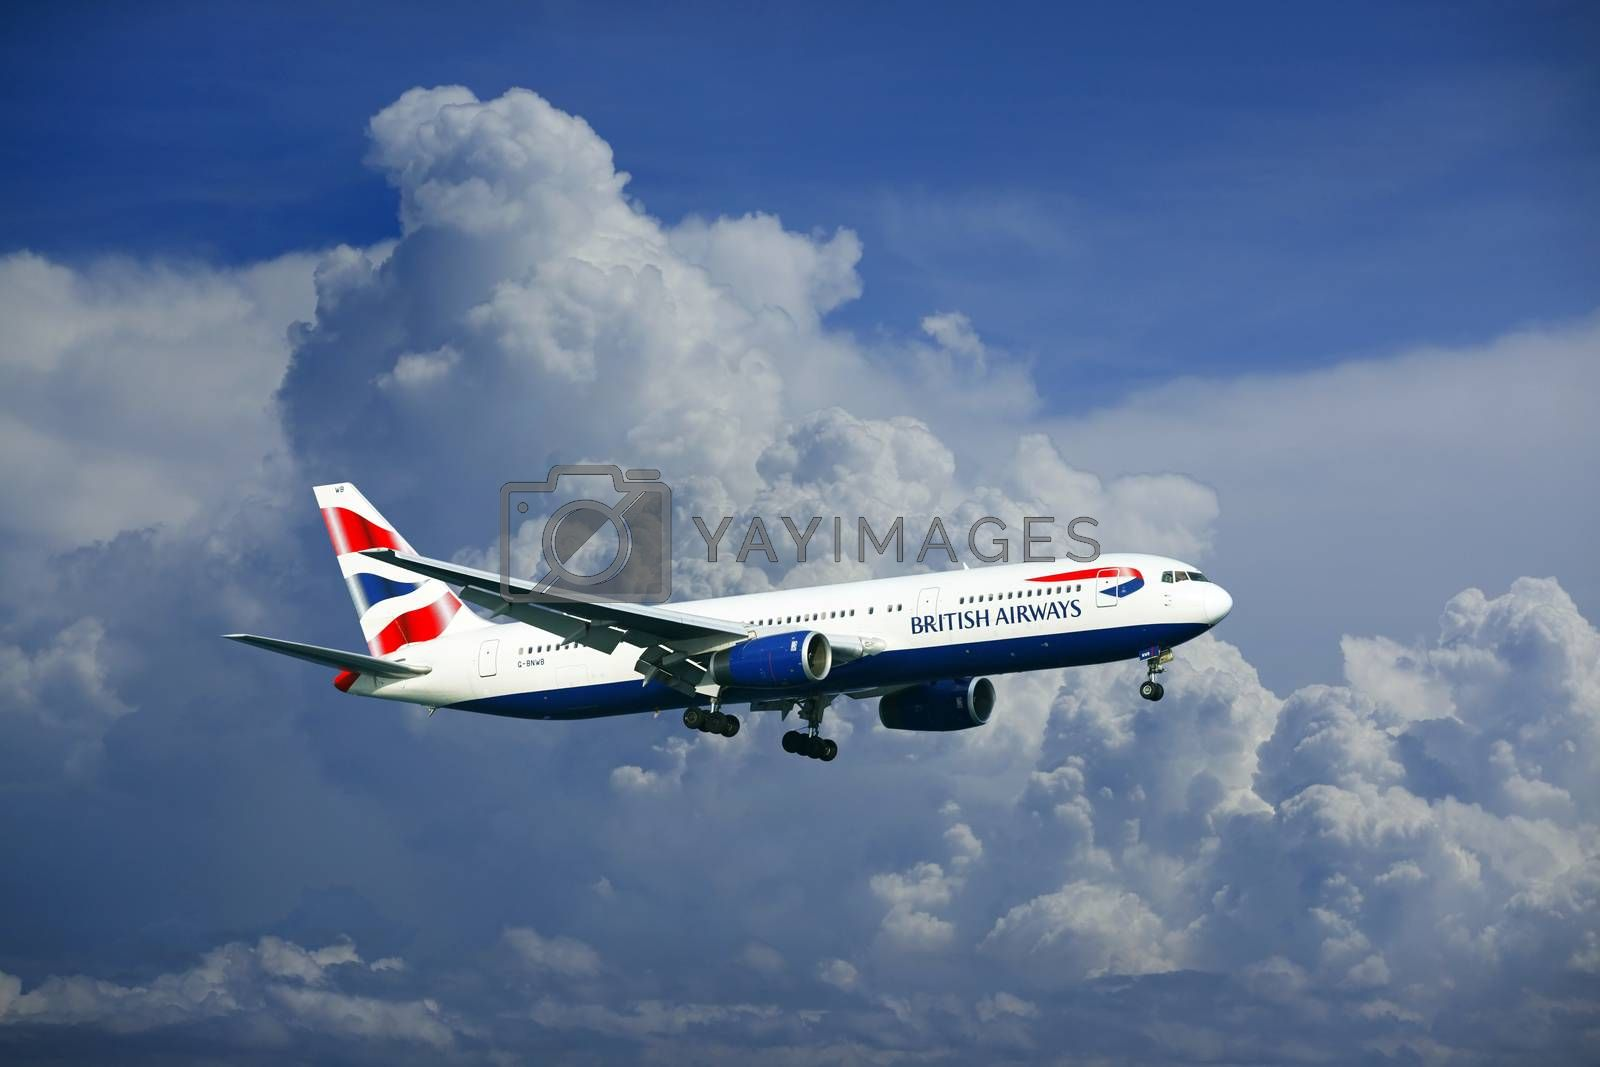 British Airways Airbus A320 by friday